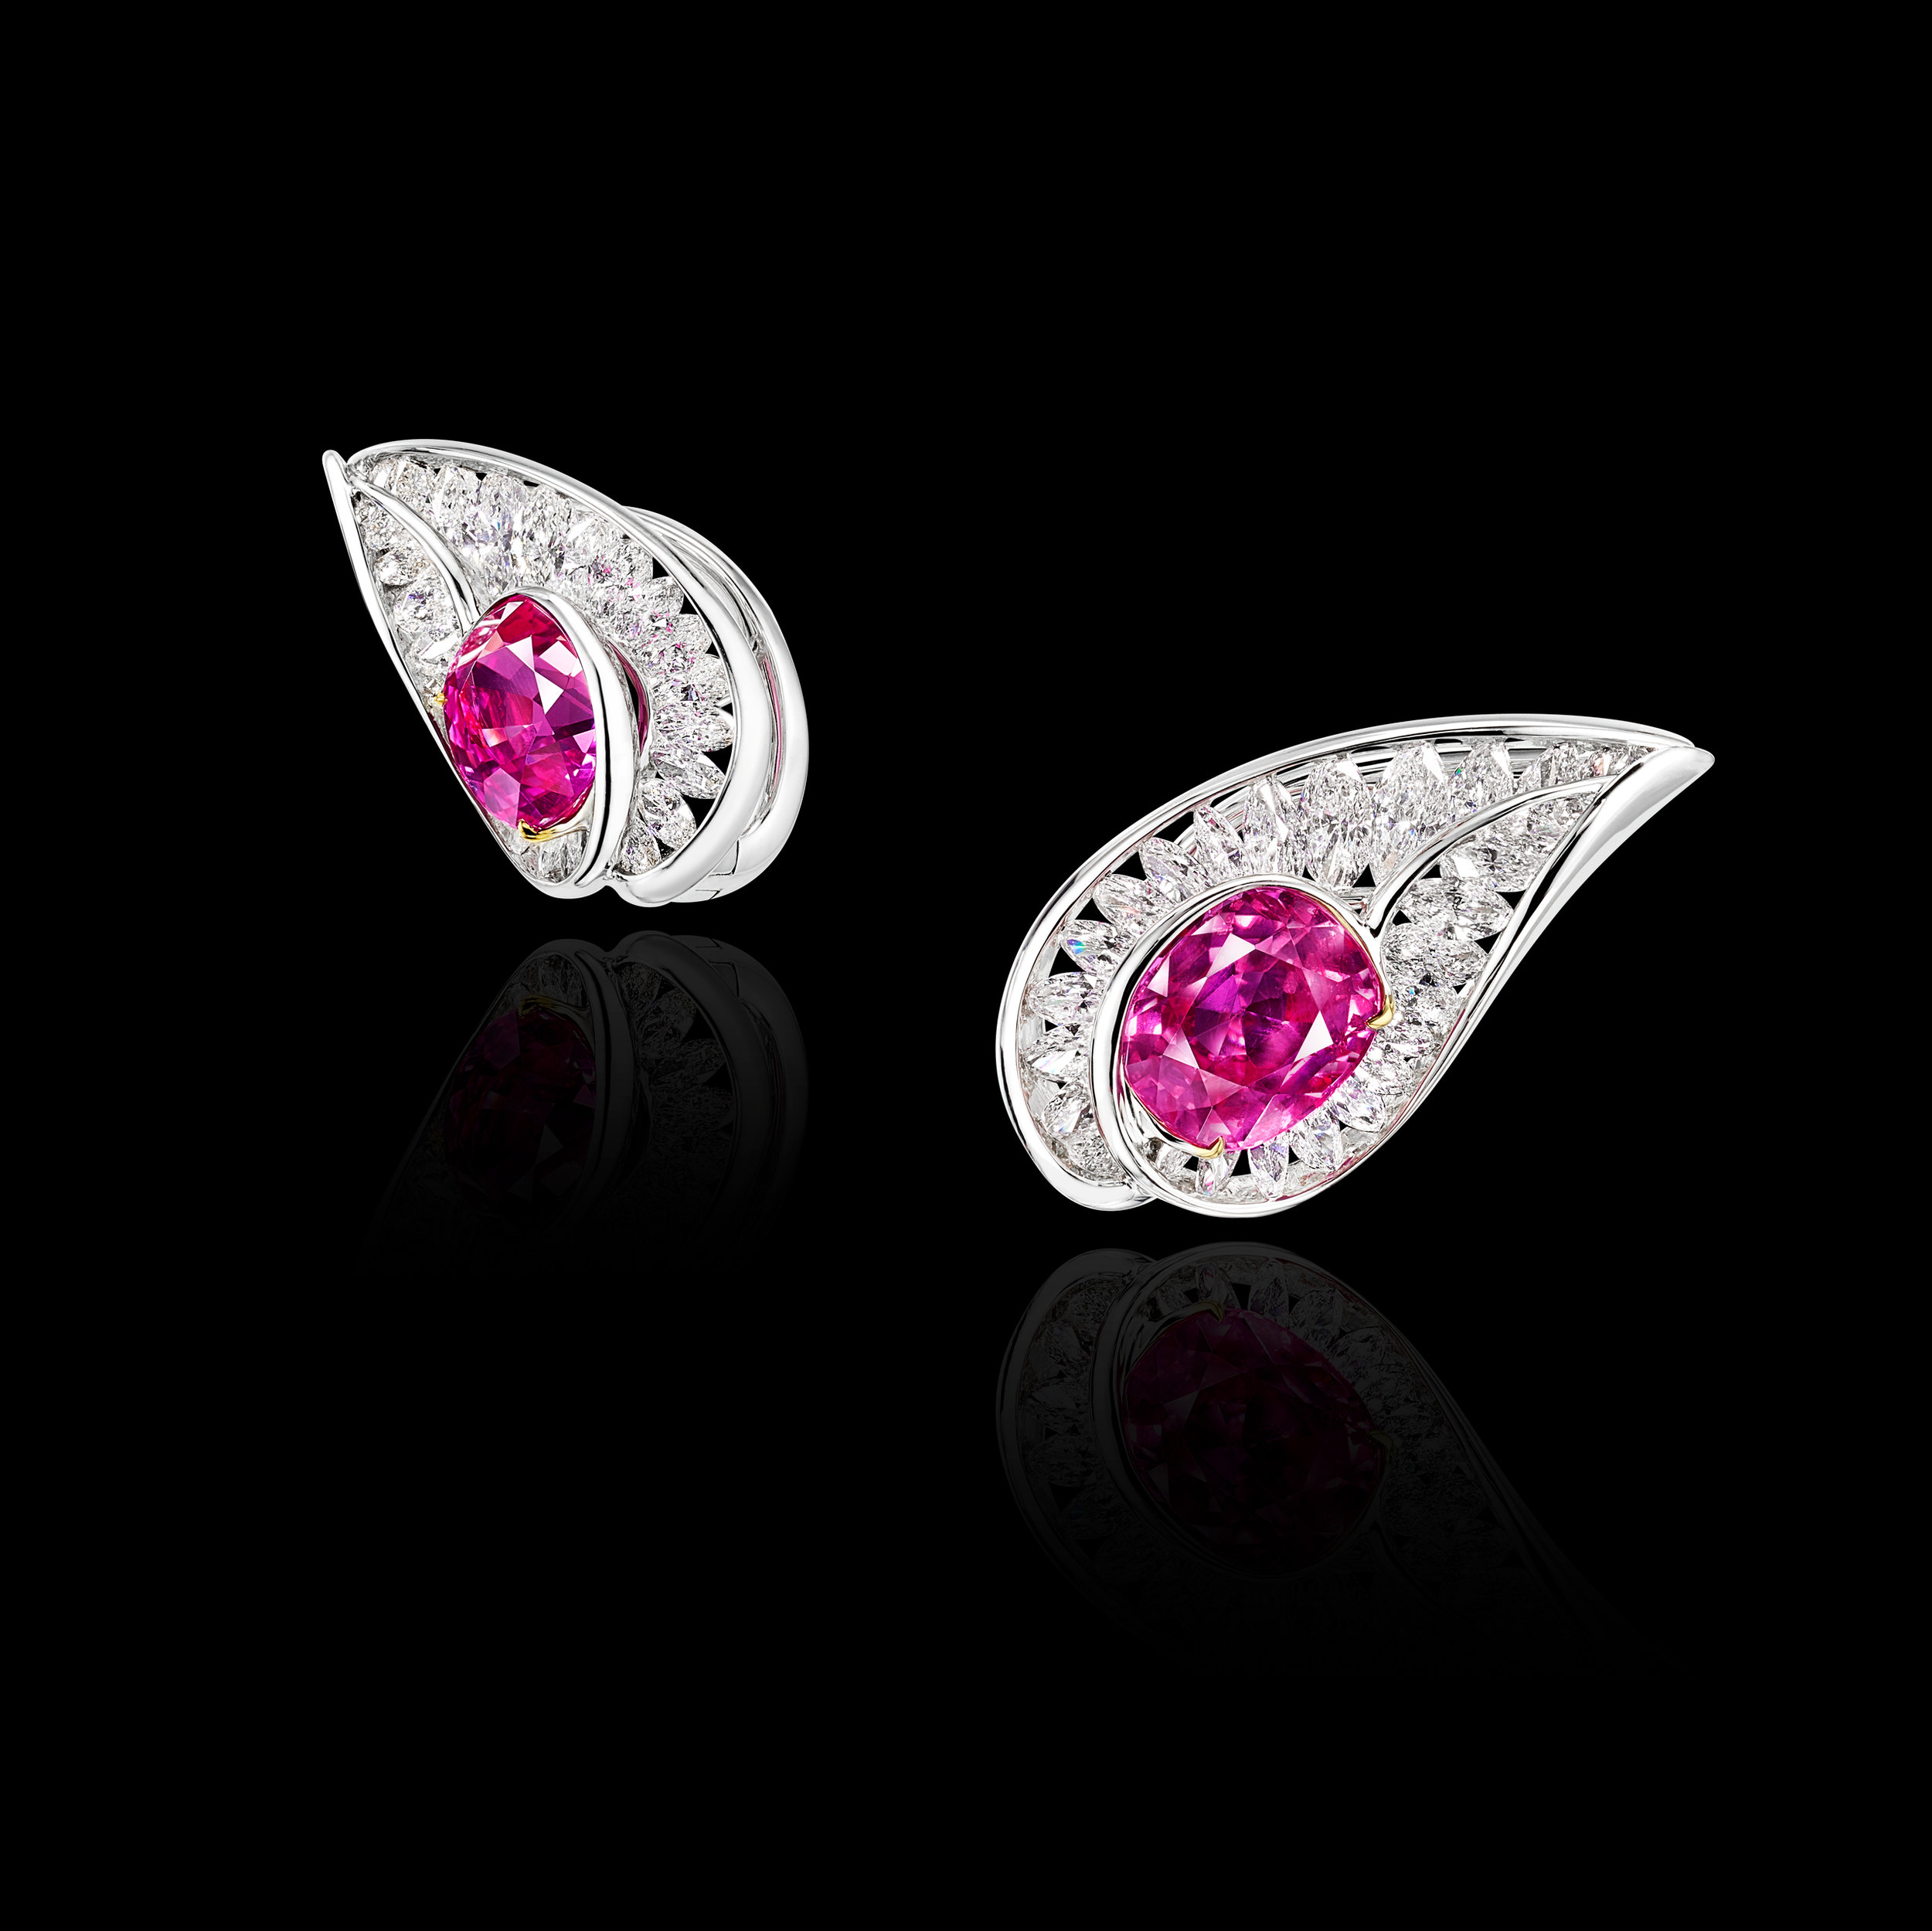 NATURAL BURMESE PINK SAPPHIRE EARRINGS